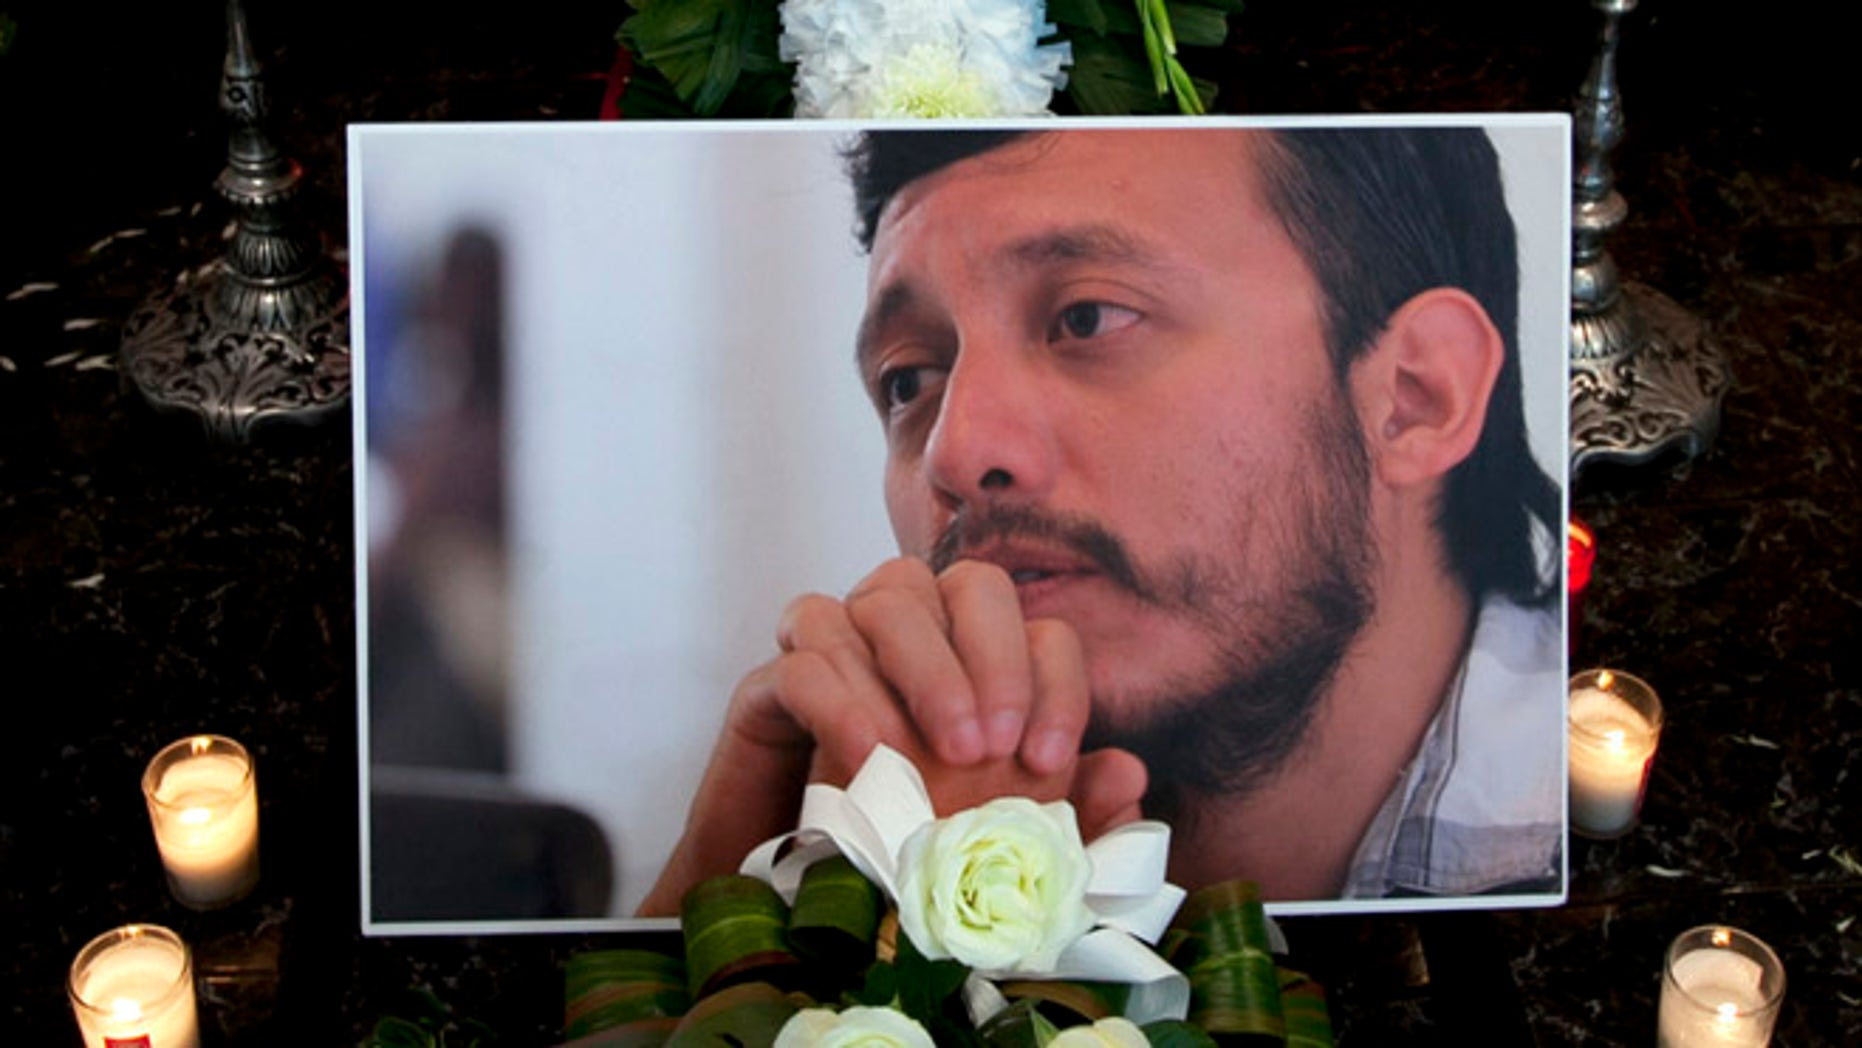 A photograph of murdered photojournalist Ruben Espinosa sits among flowers and candles in front of his casket inside a funeral home before his wake begins in Mexico City, Monday, Aug. 3, 2015.